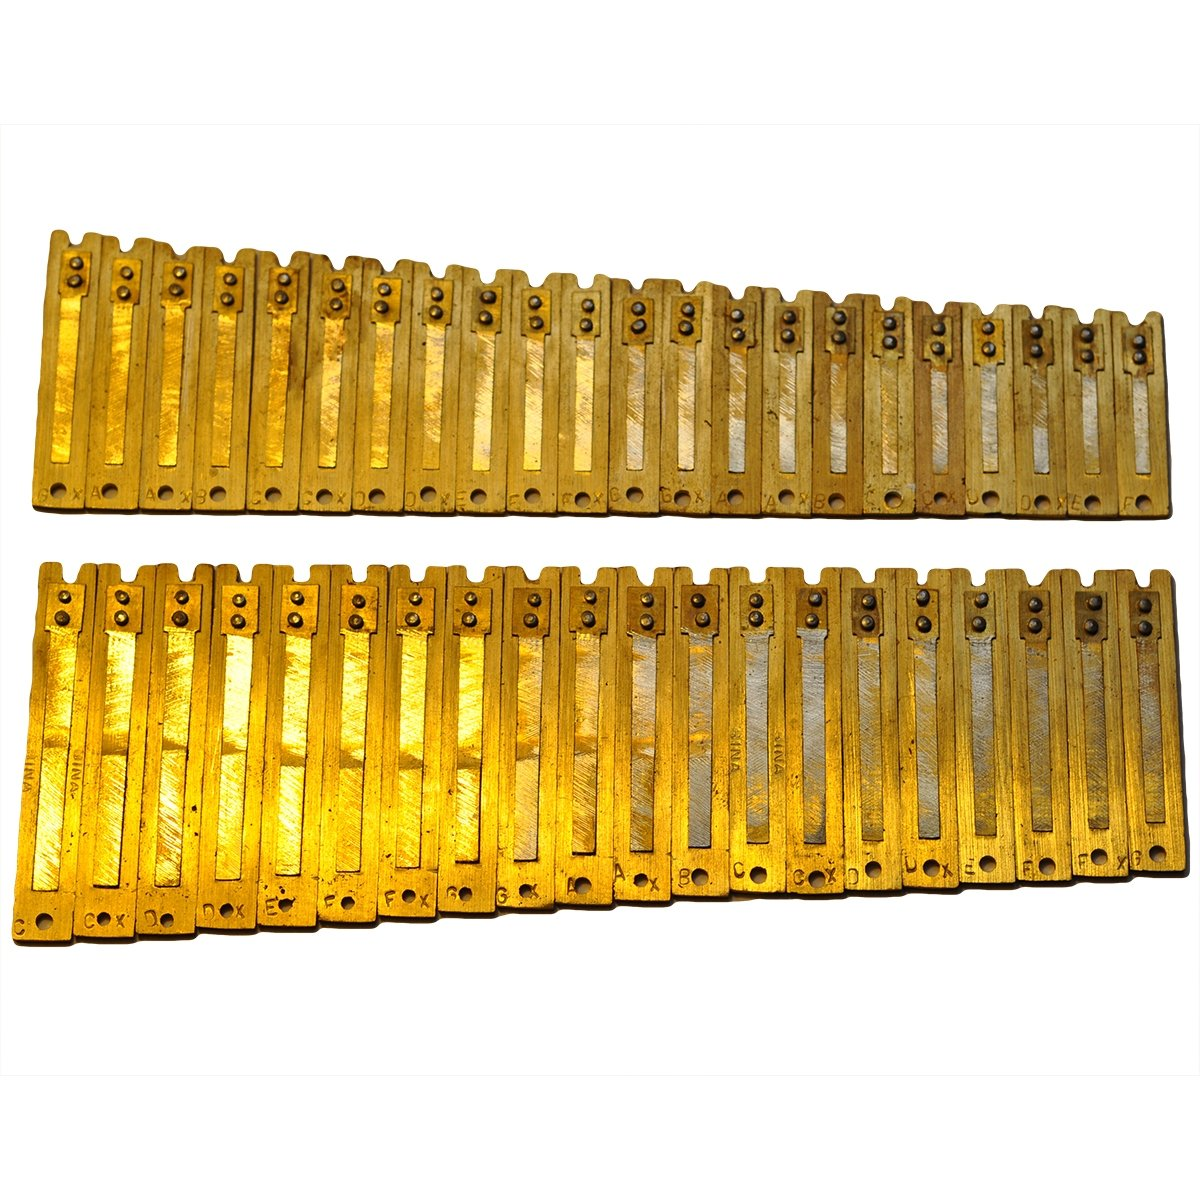 Harmonium Reeds - 3.5 Octave Bass Set for Delhi harmoniums